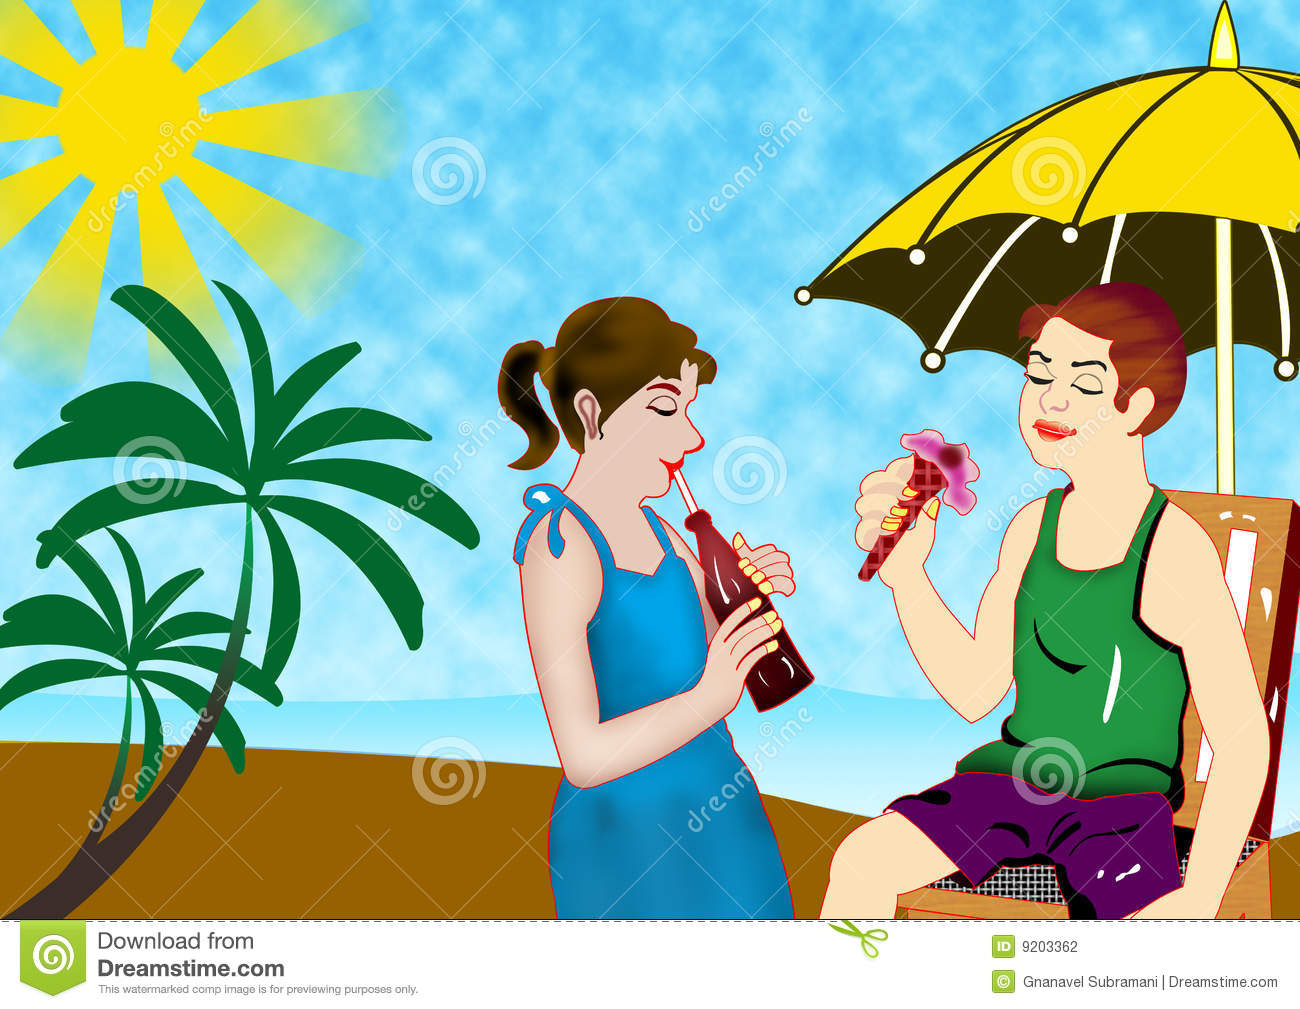 Boy eat ice cream, girl drink a summer vacation under umbrella.